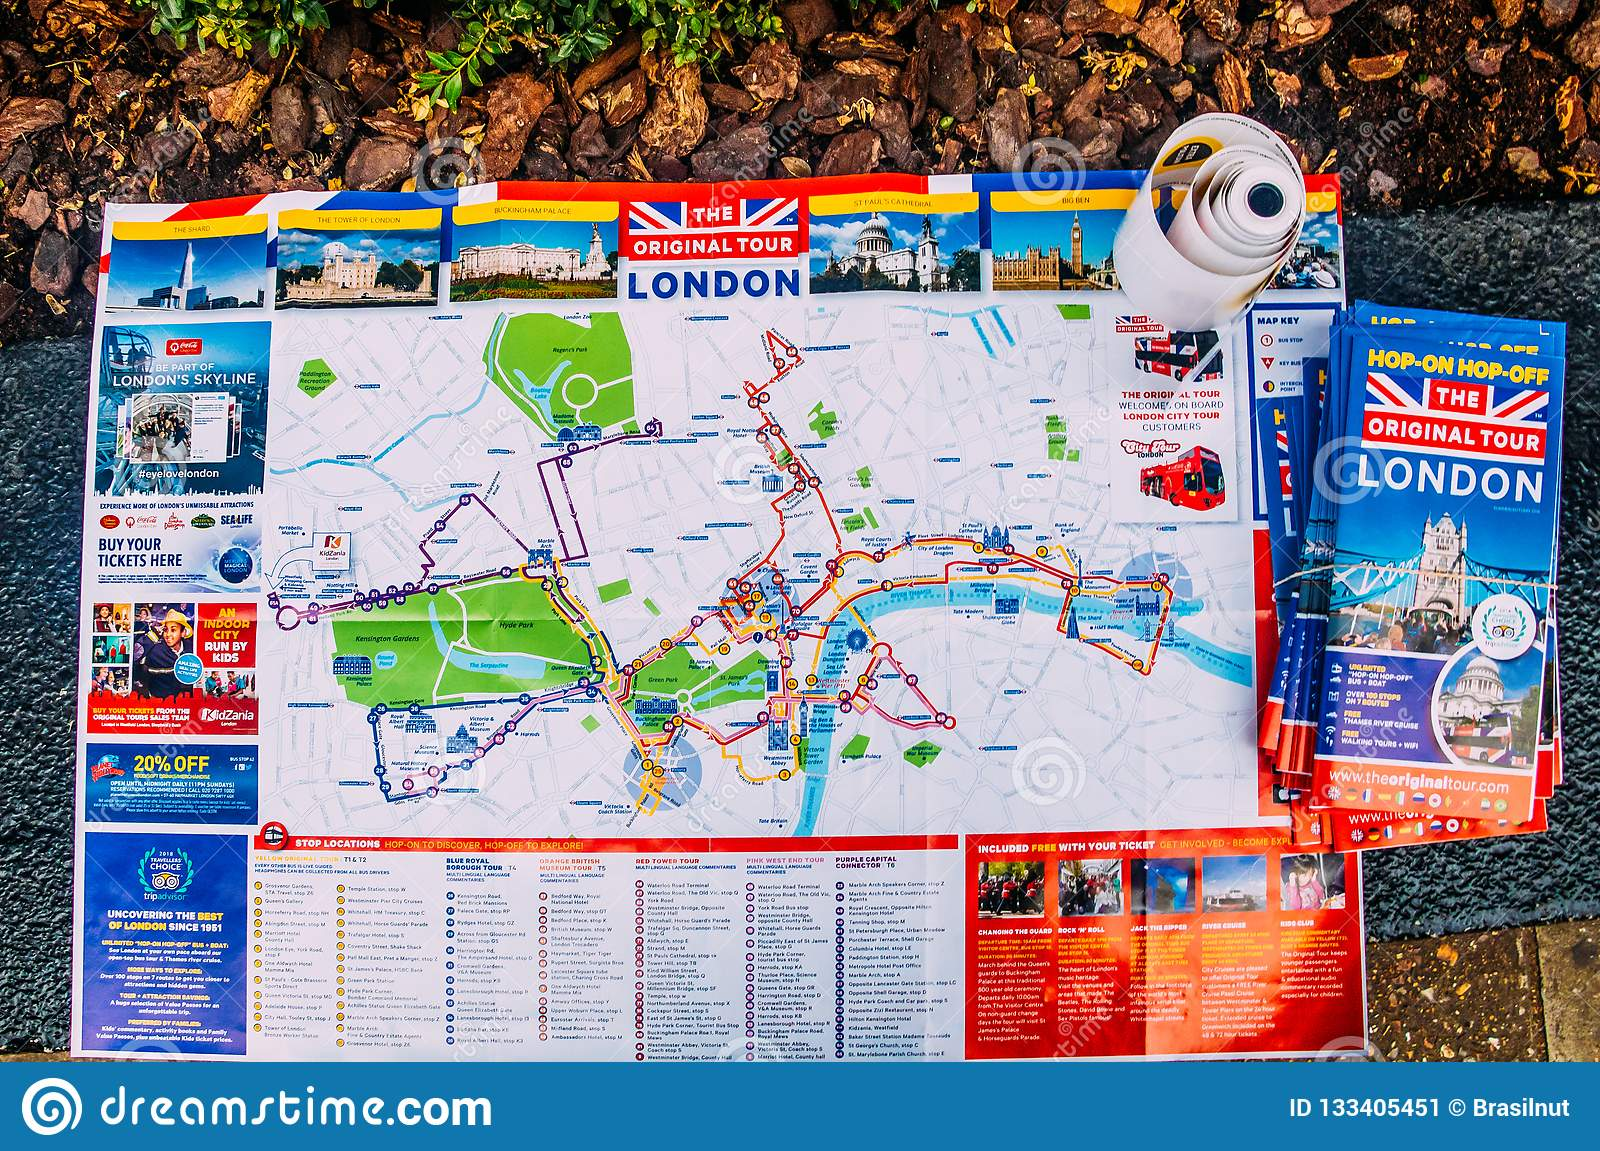 The Original Tour London Map.Map Of Central London Tours Sponsored By A London Original Tour